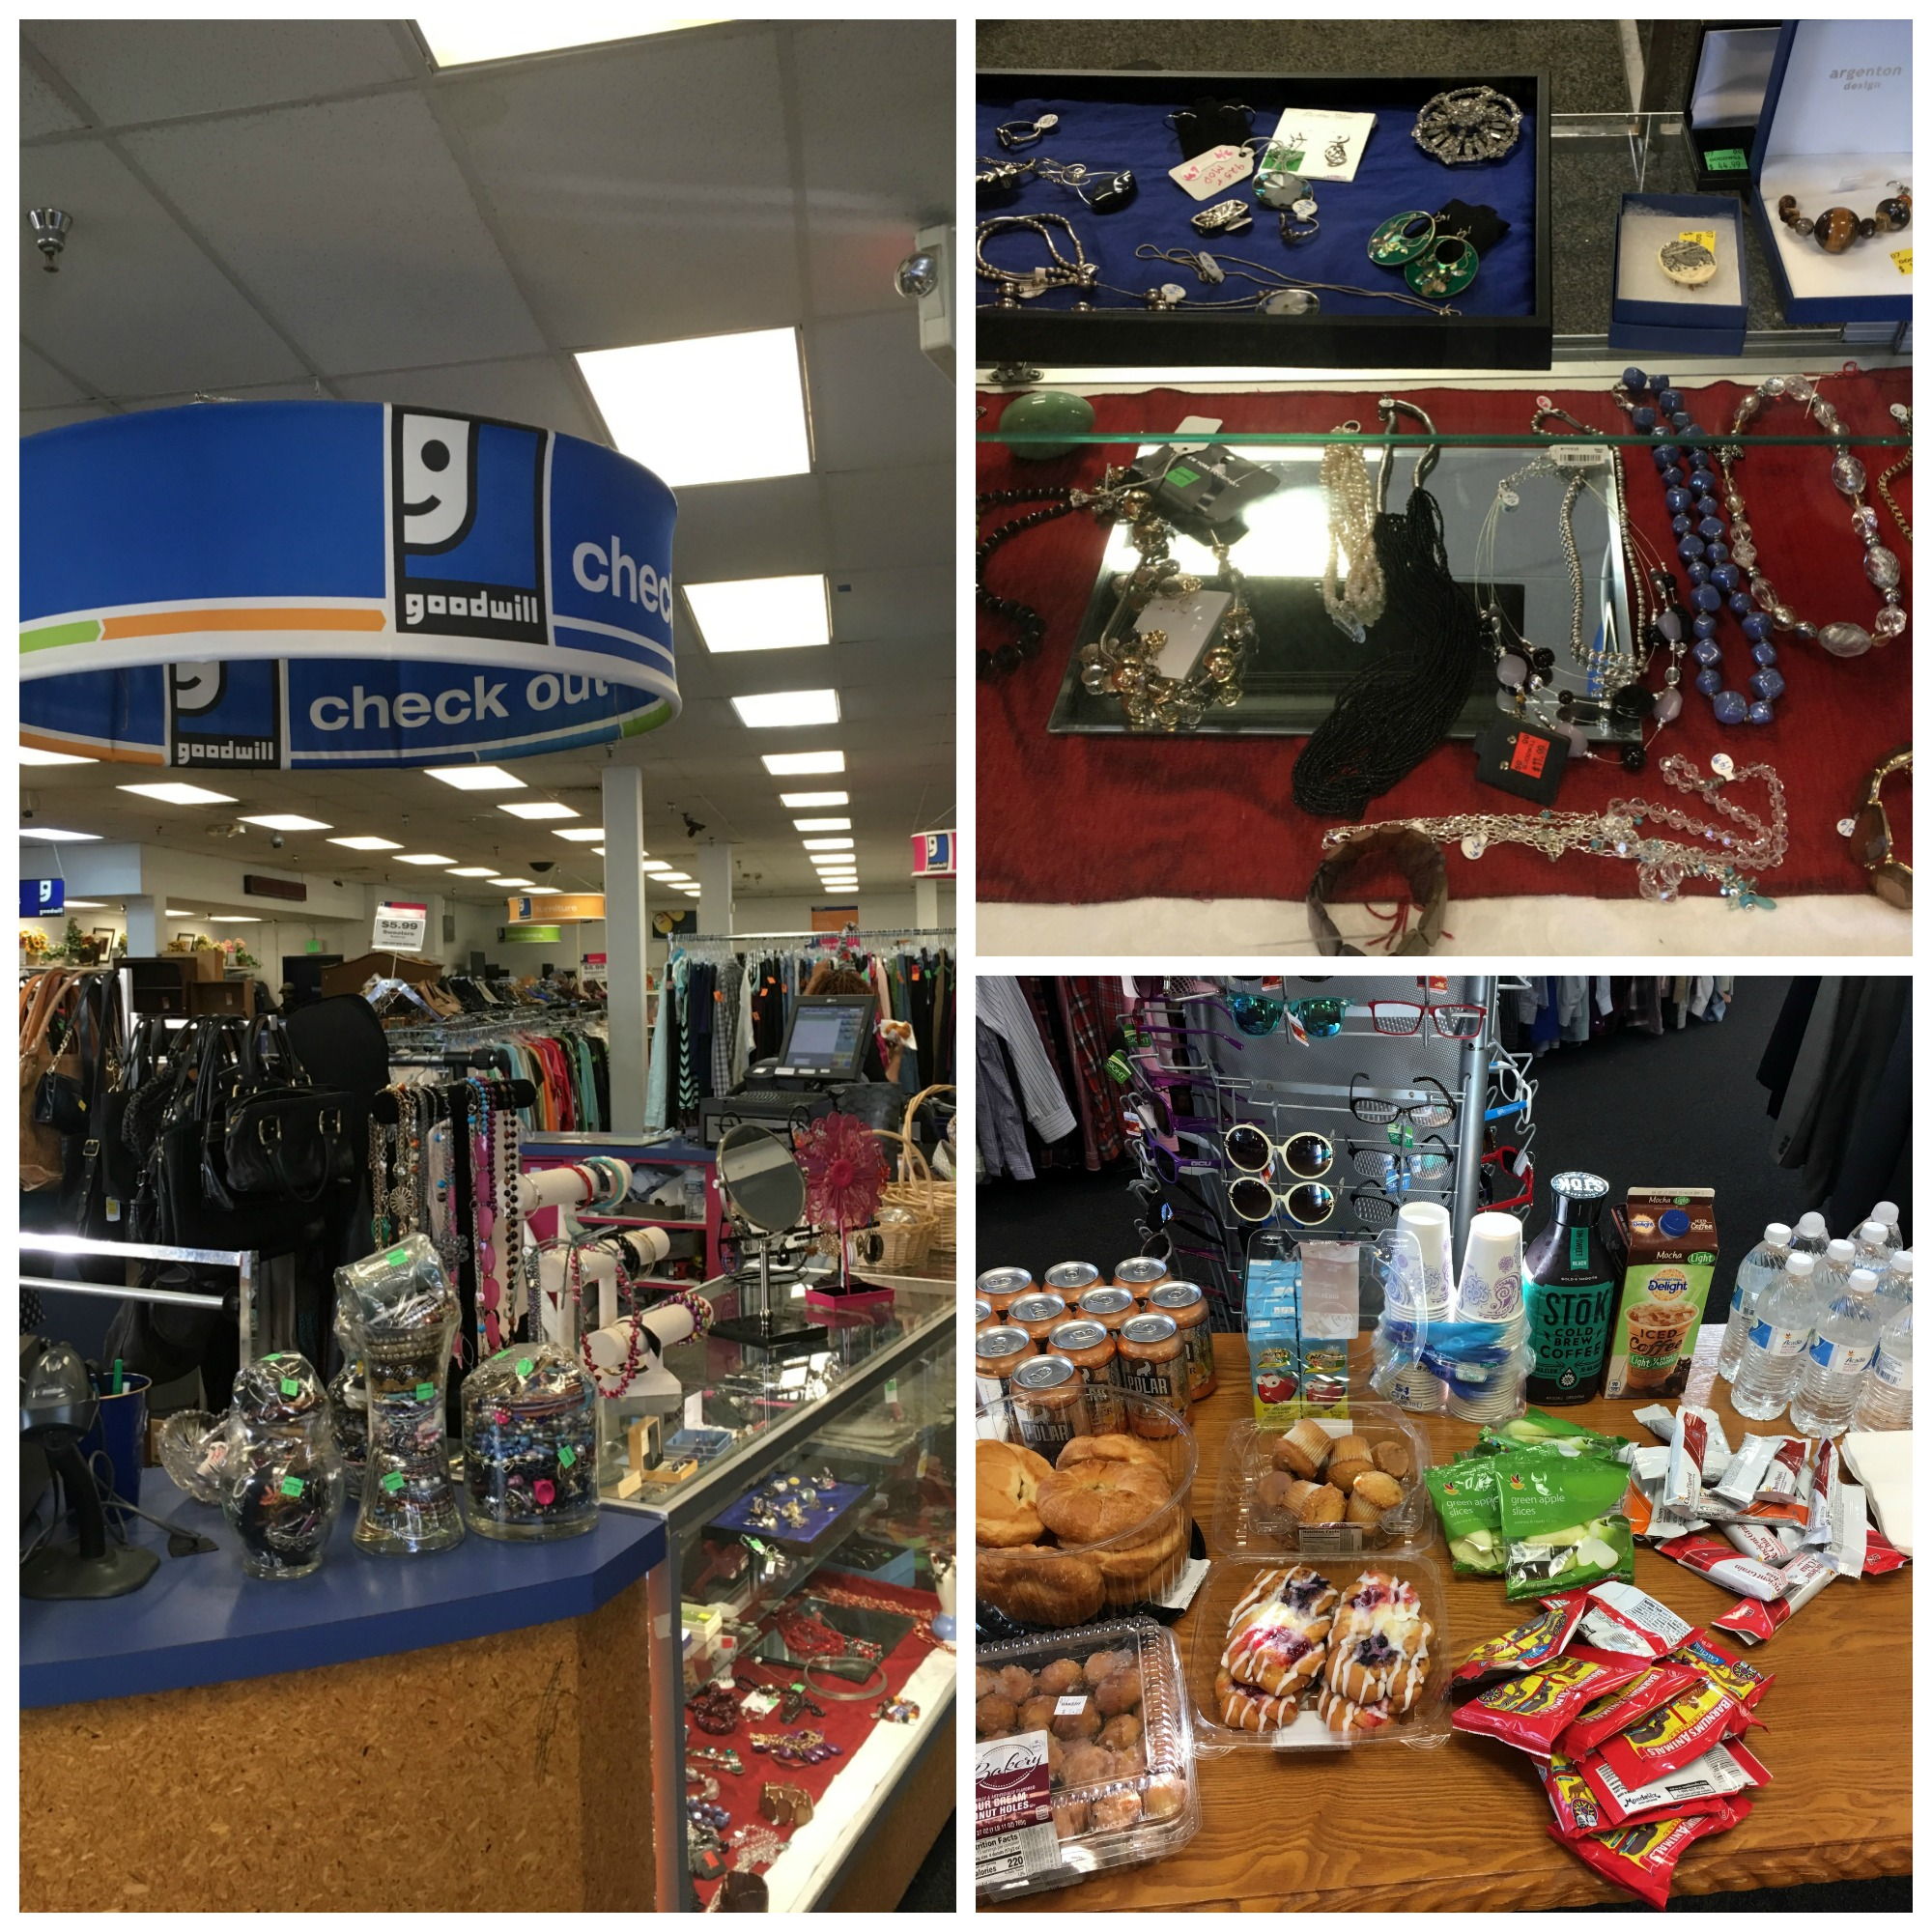 A collage of three pictures: one of the checkout counter of the Glebe Road Goodwill location, one of the Glebe Road jewlery case, and a third of the breakfast set out for the Meetup Attendees